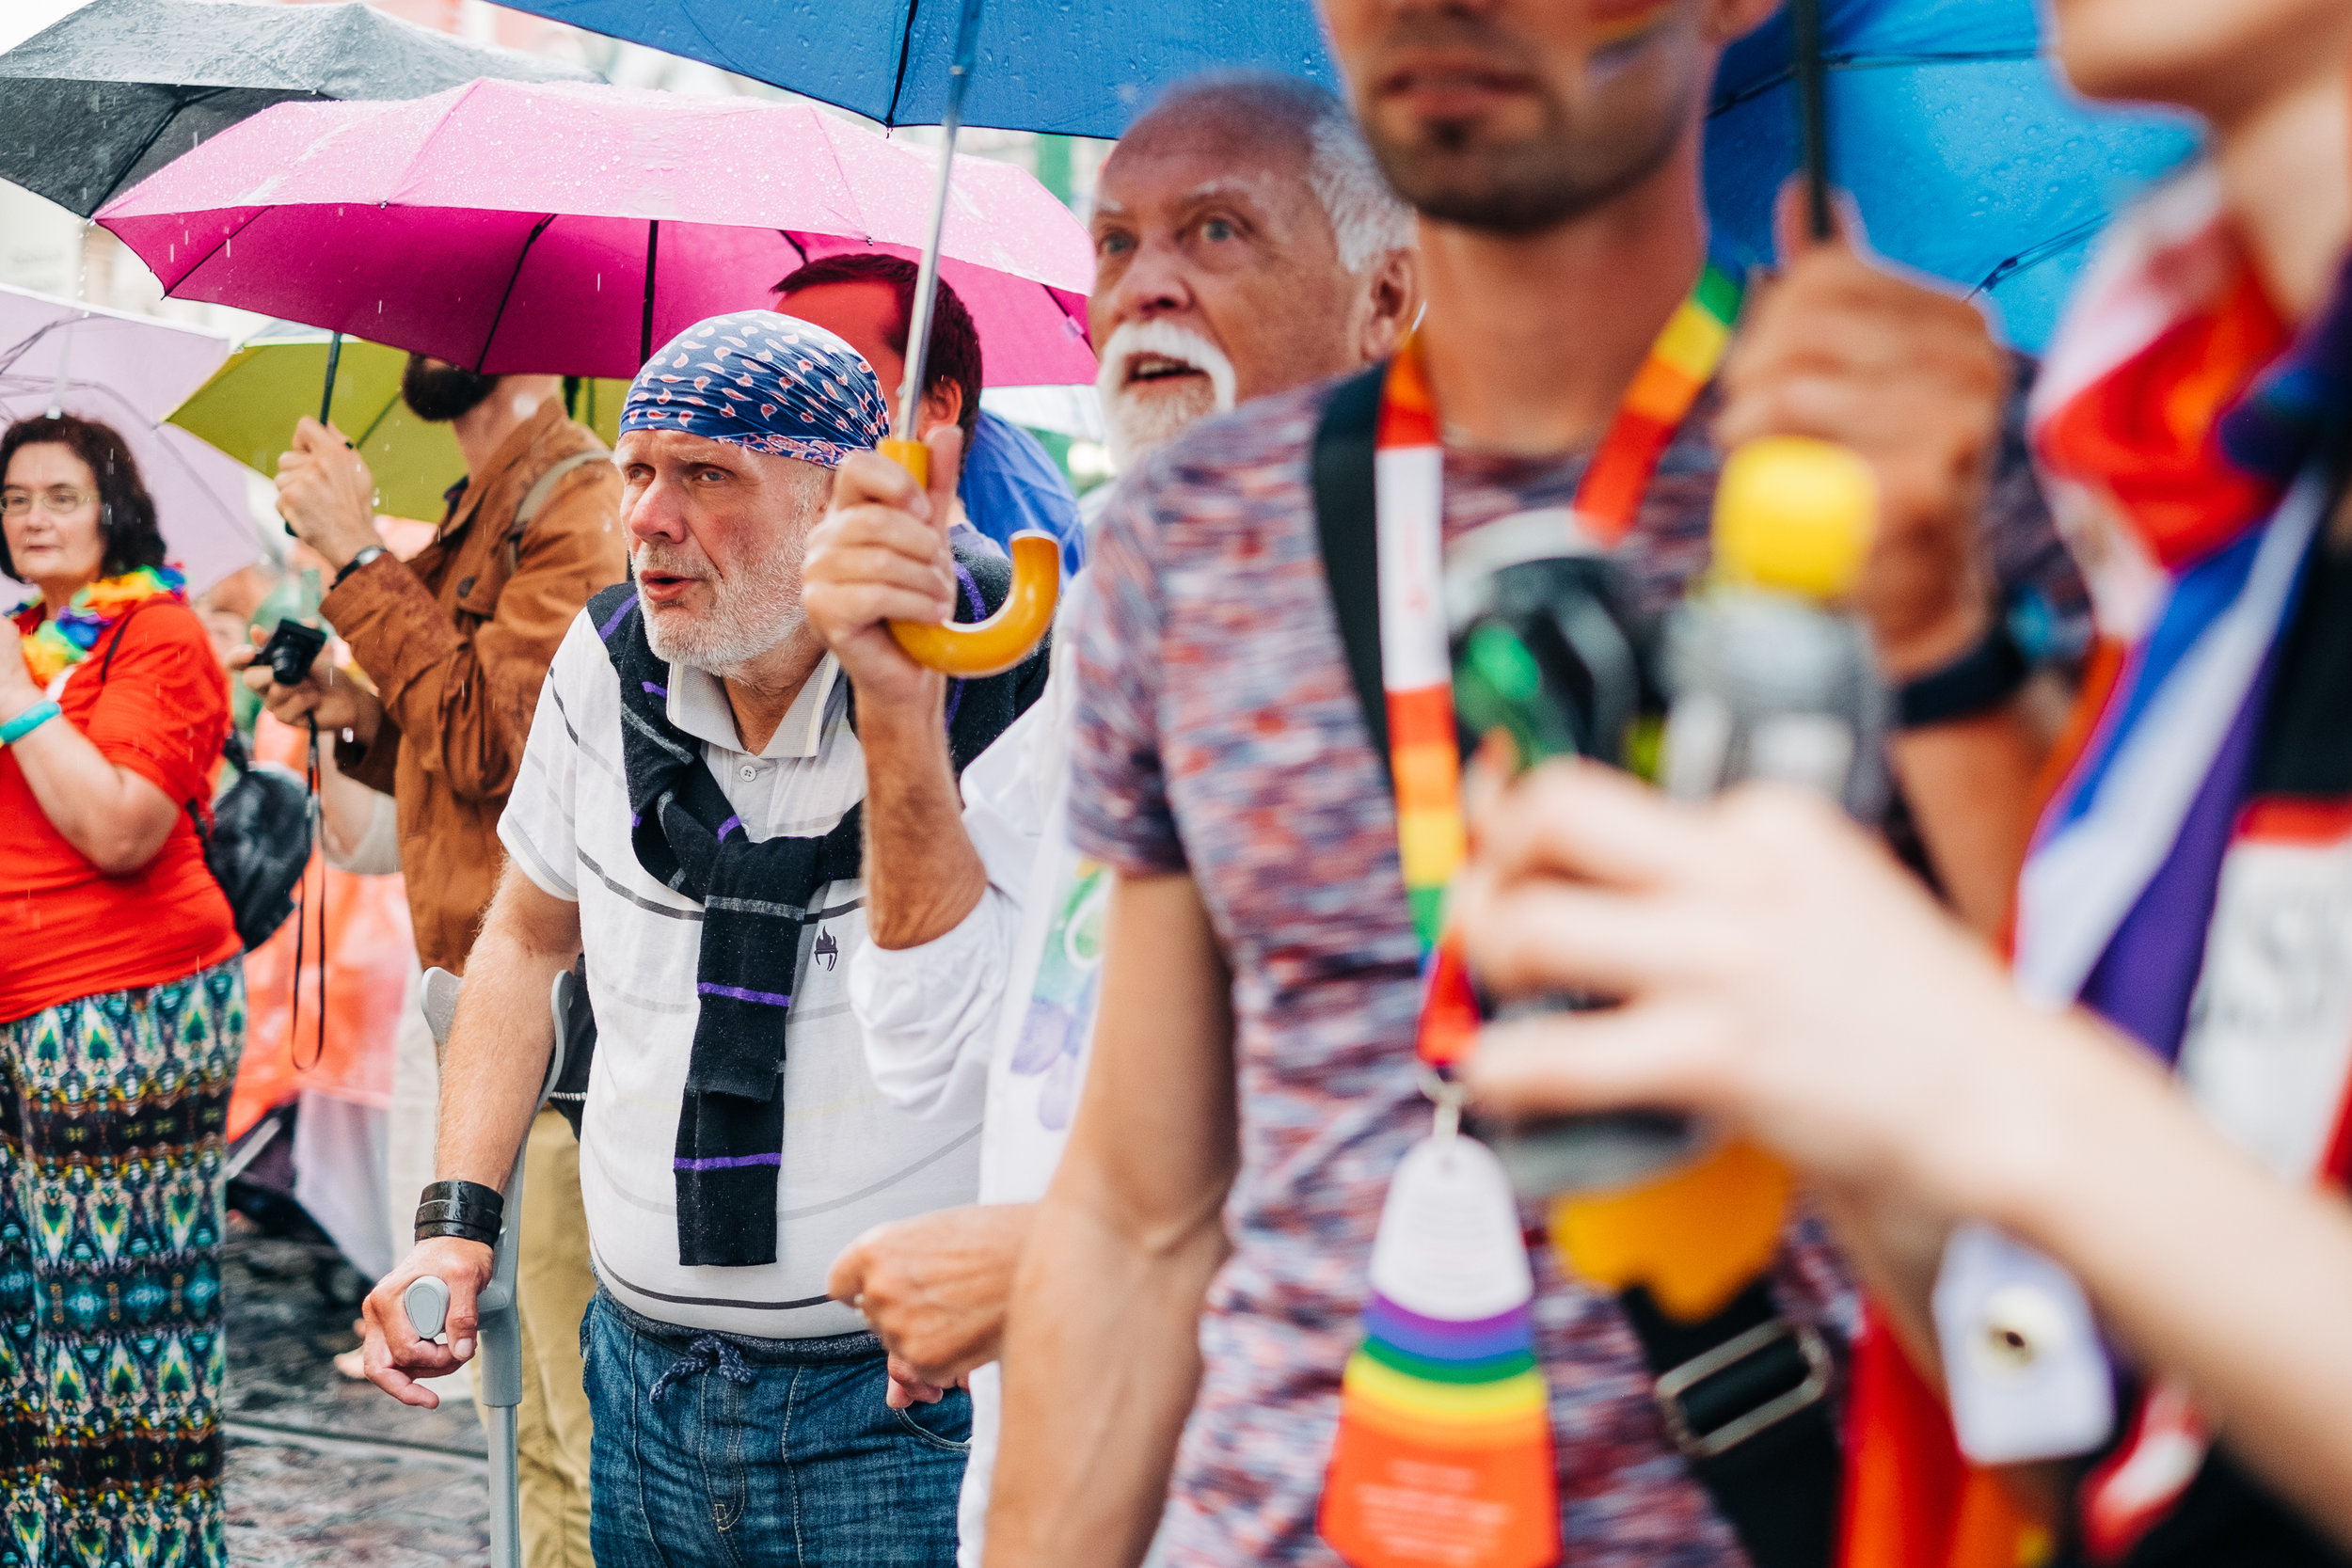 Prague Pride 2019 (35 of 47).jpg